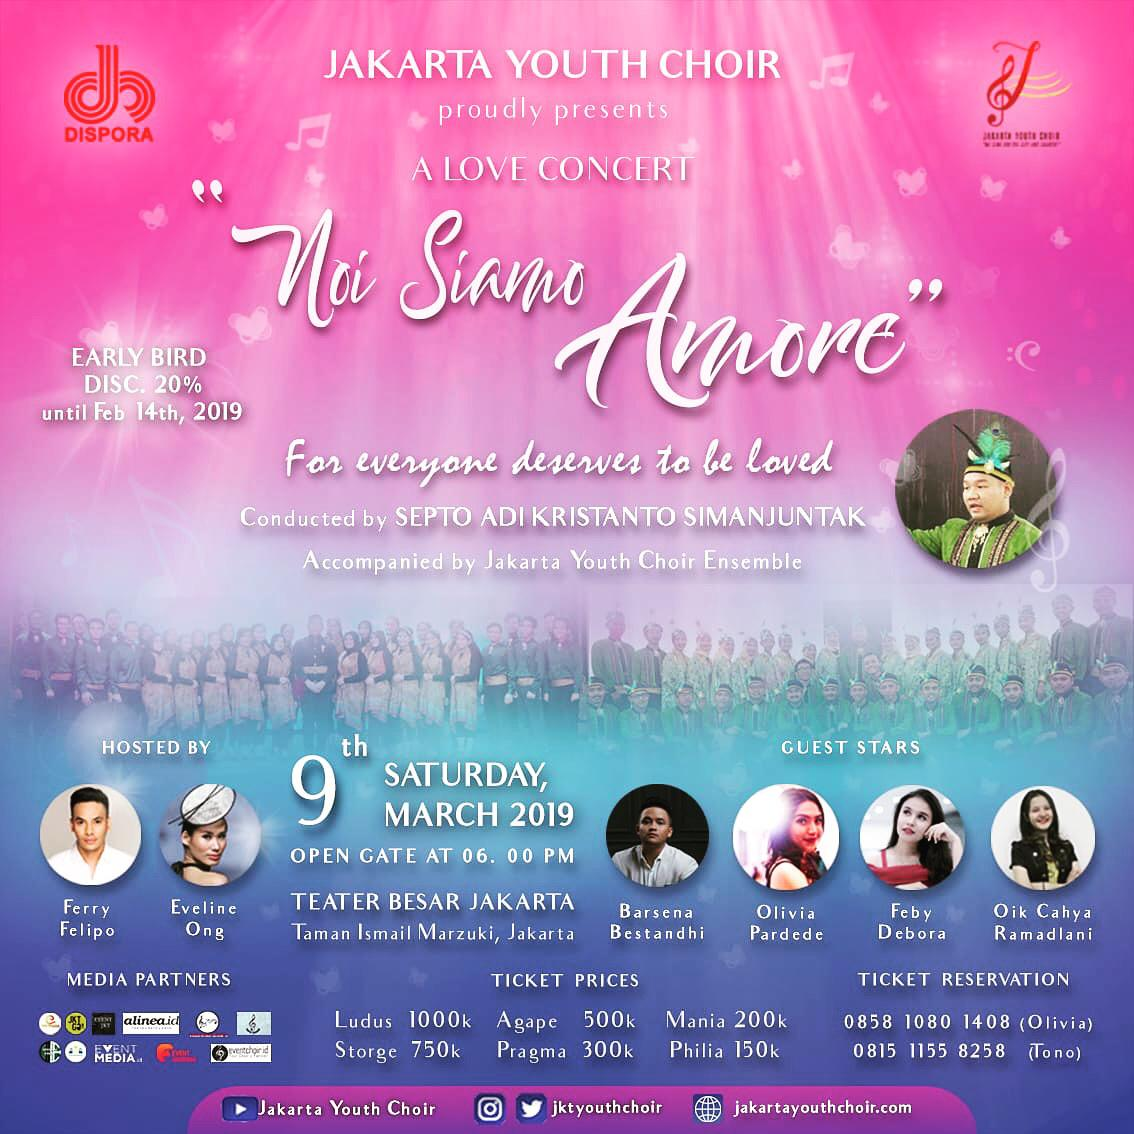 The Love Concert by Jakarta Youth Choir